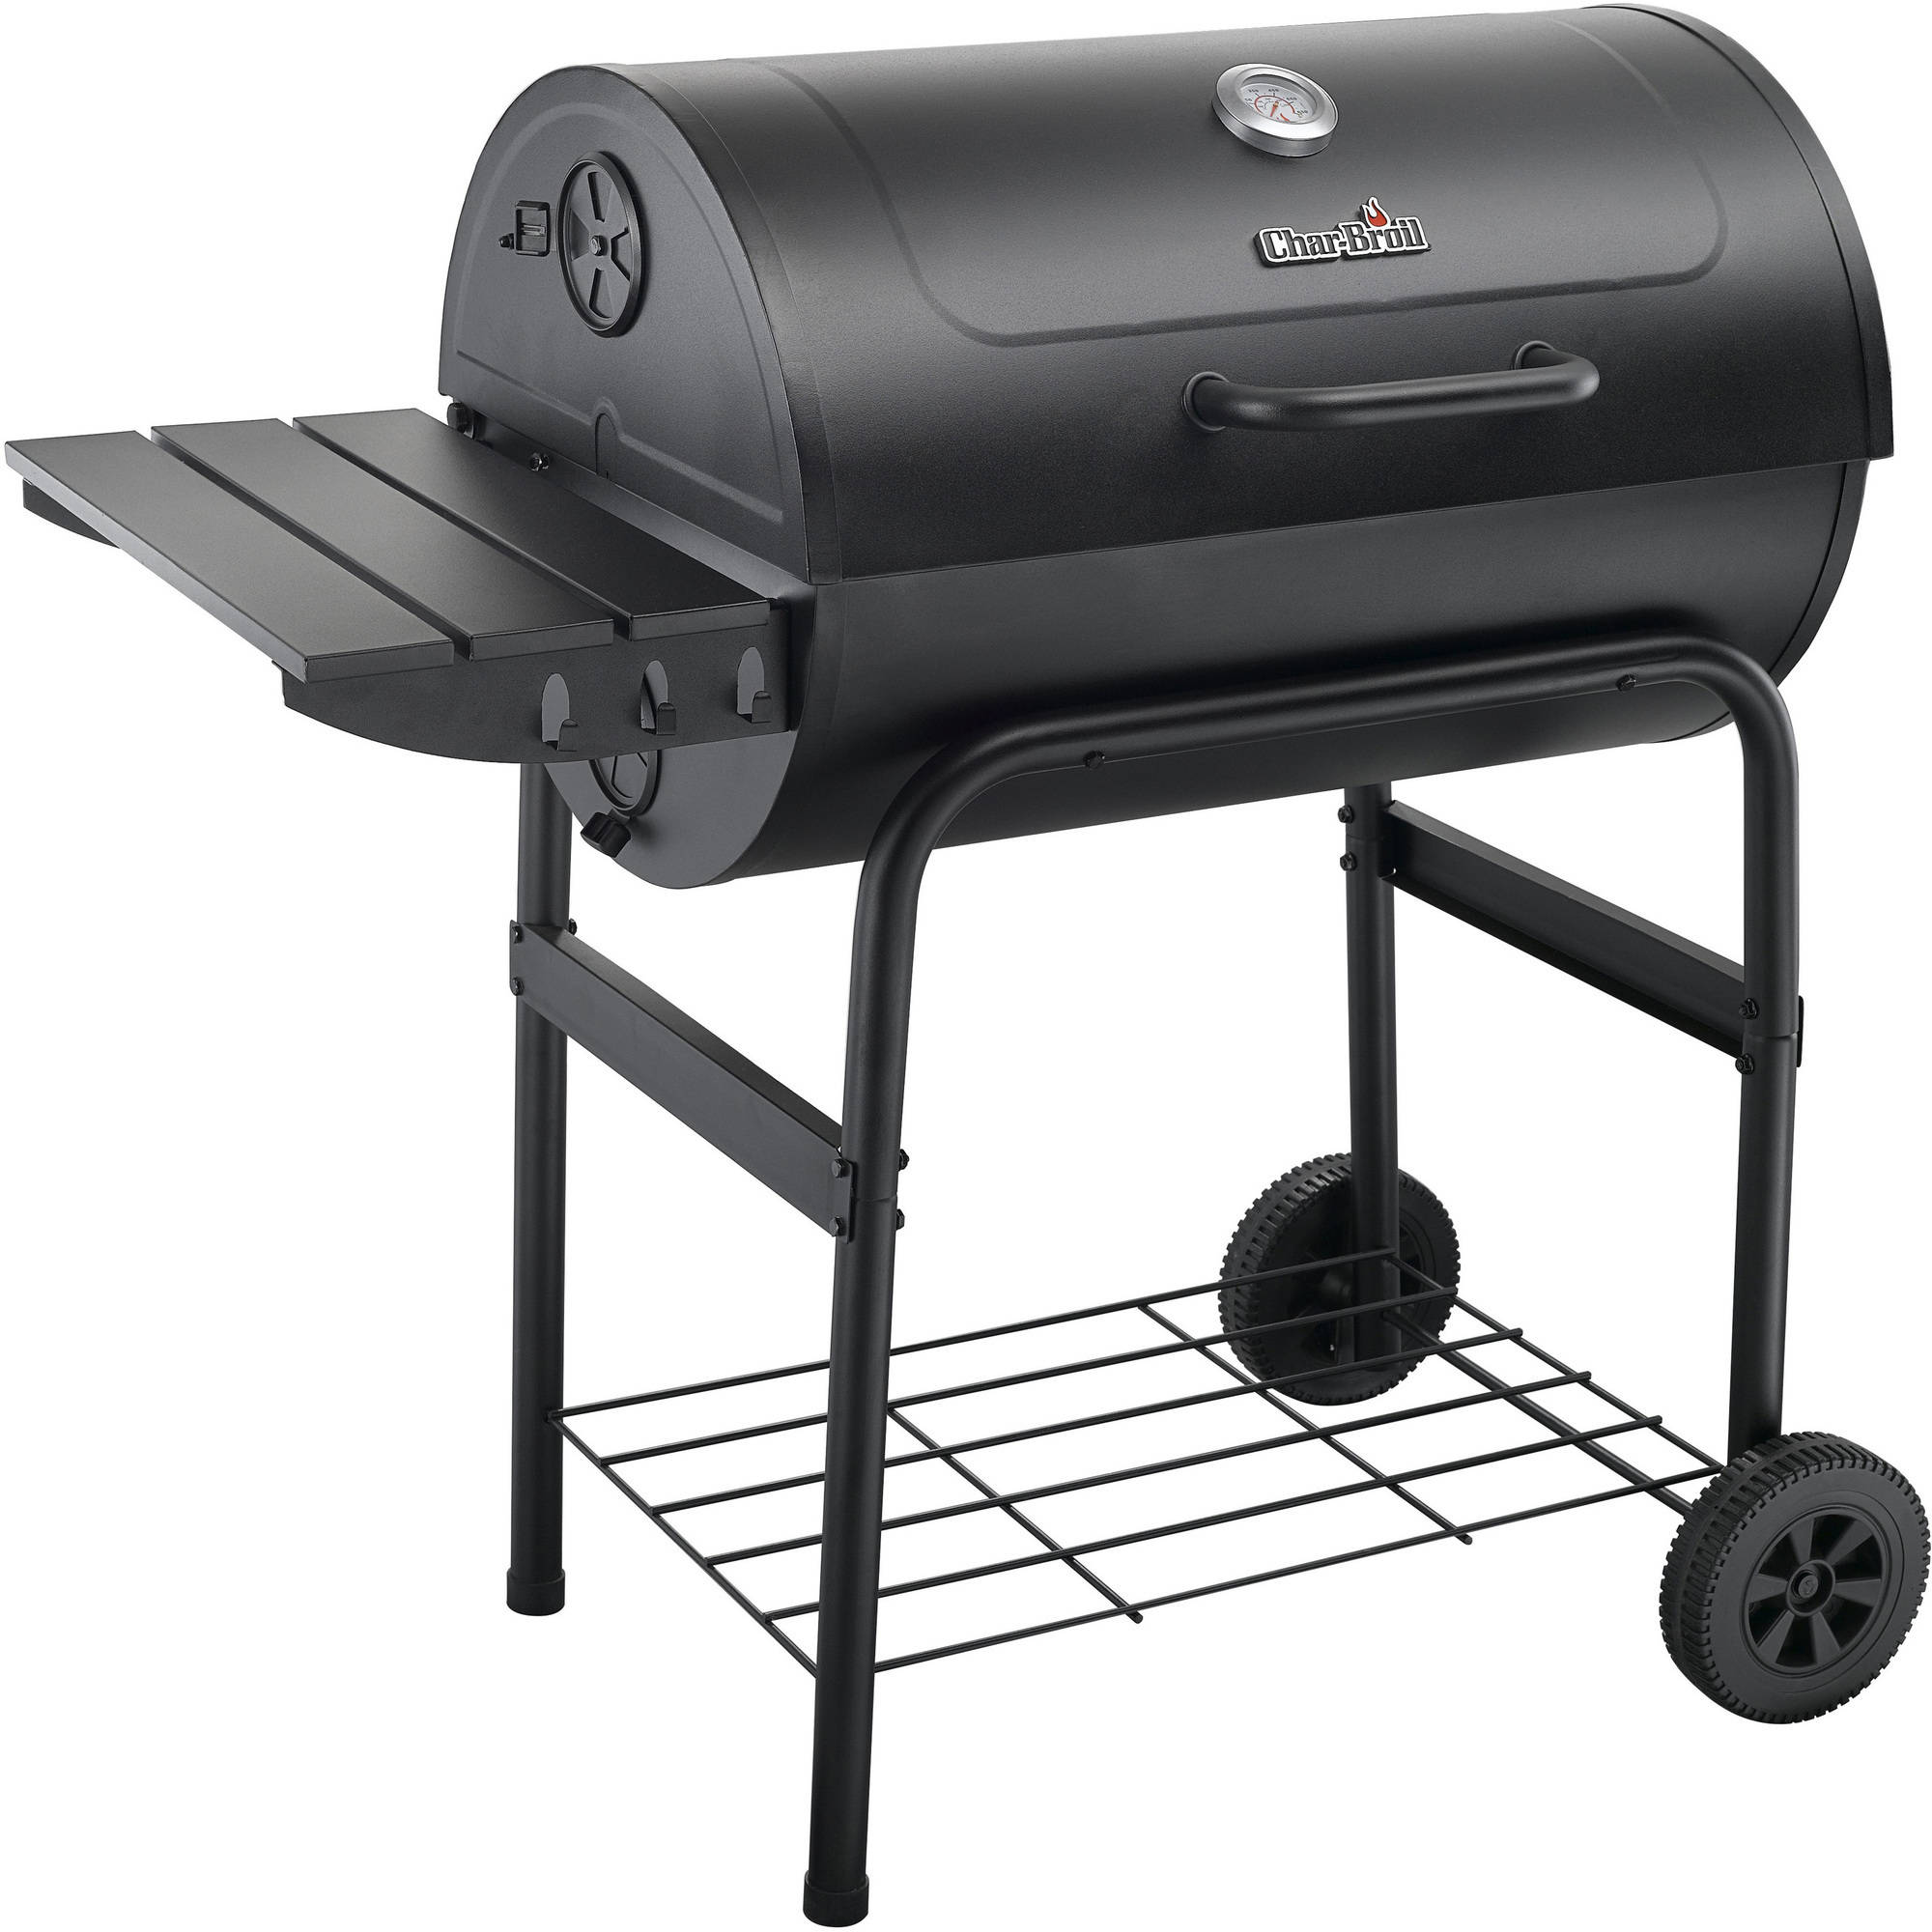 Char-Broil American Gourmet Charcoal Grill 840 by Char-Broil